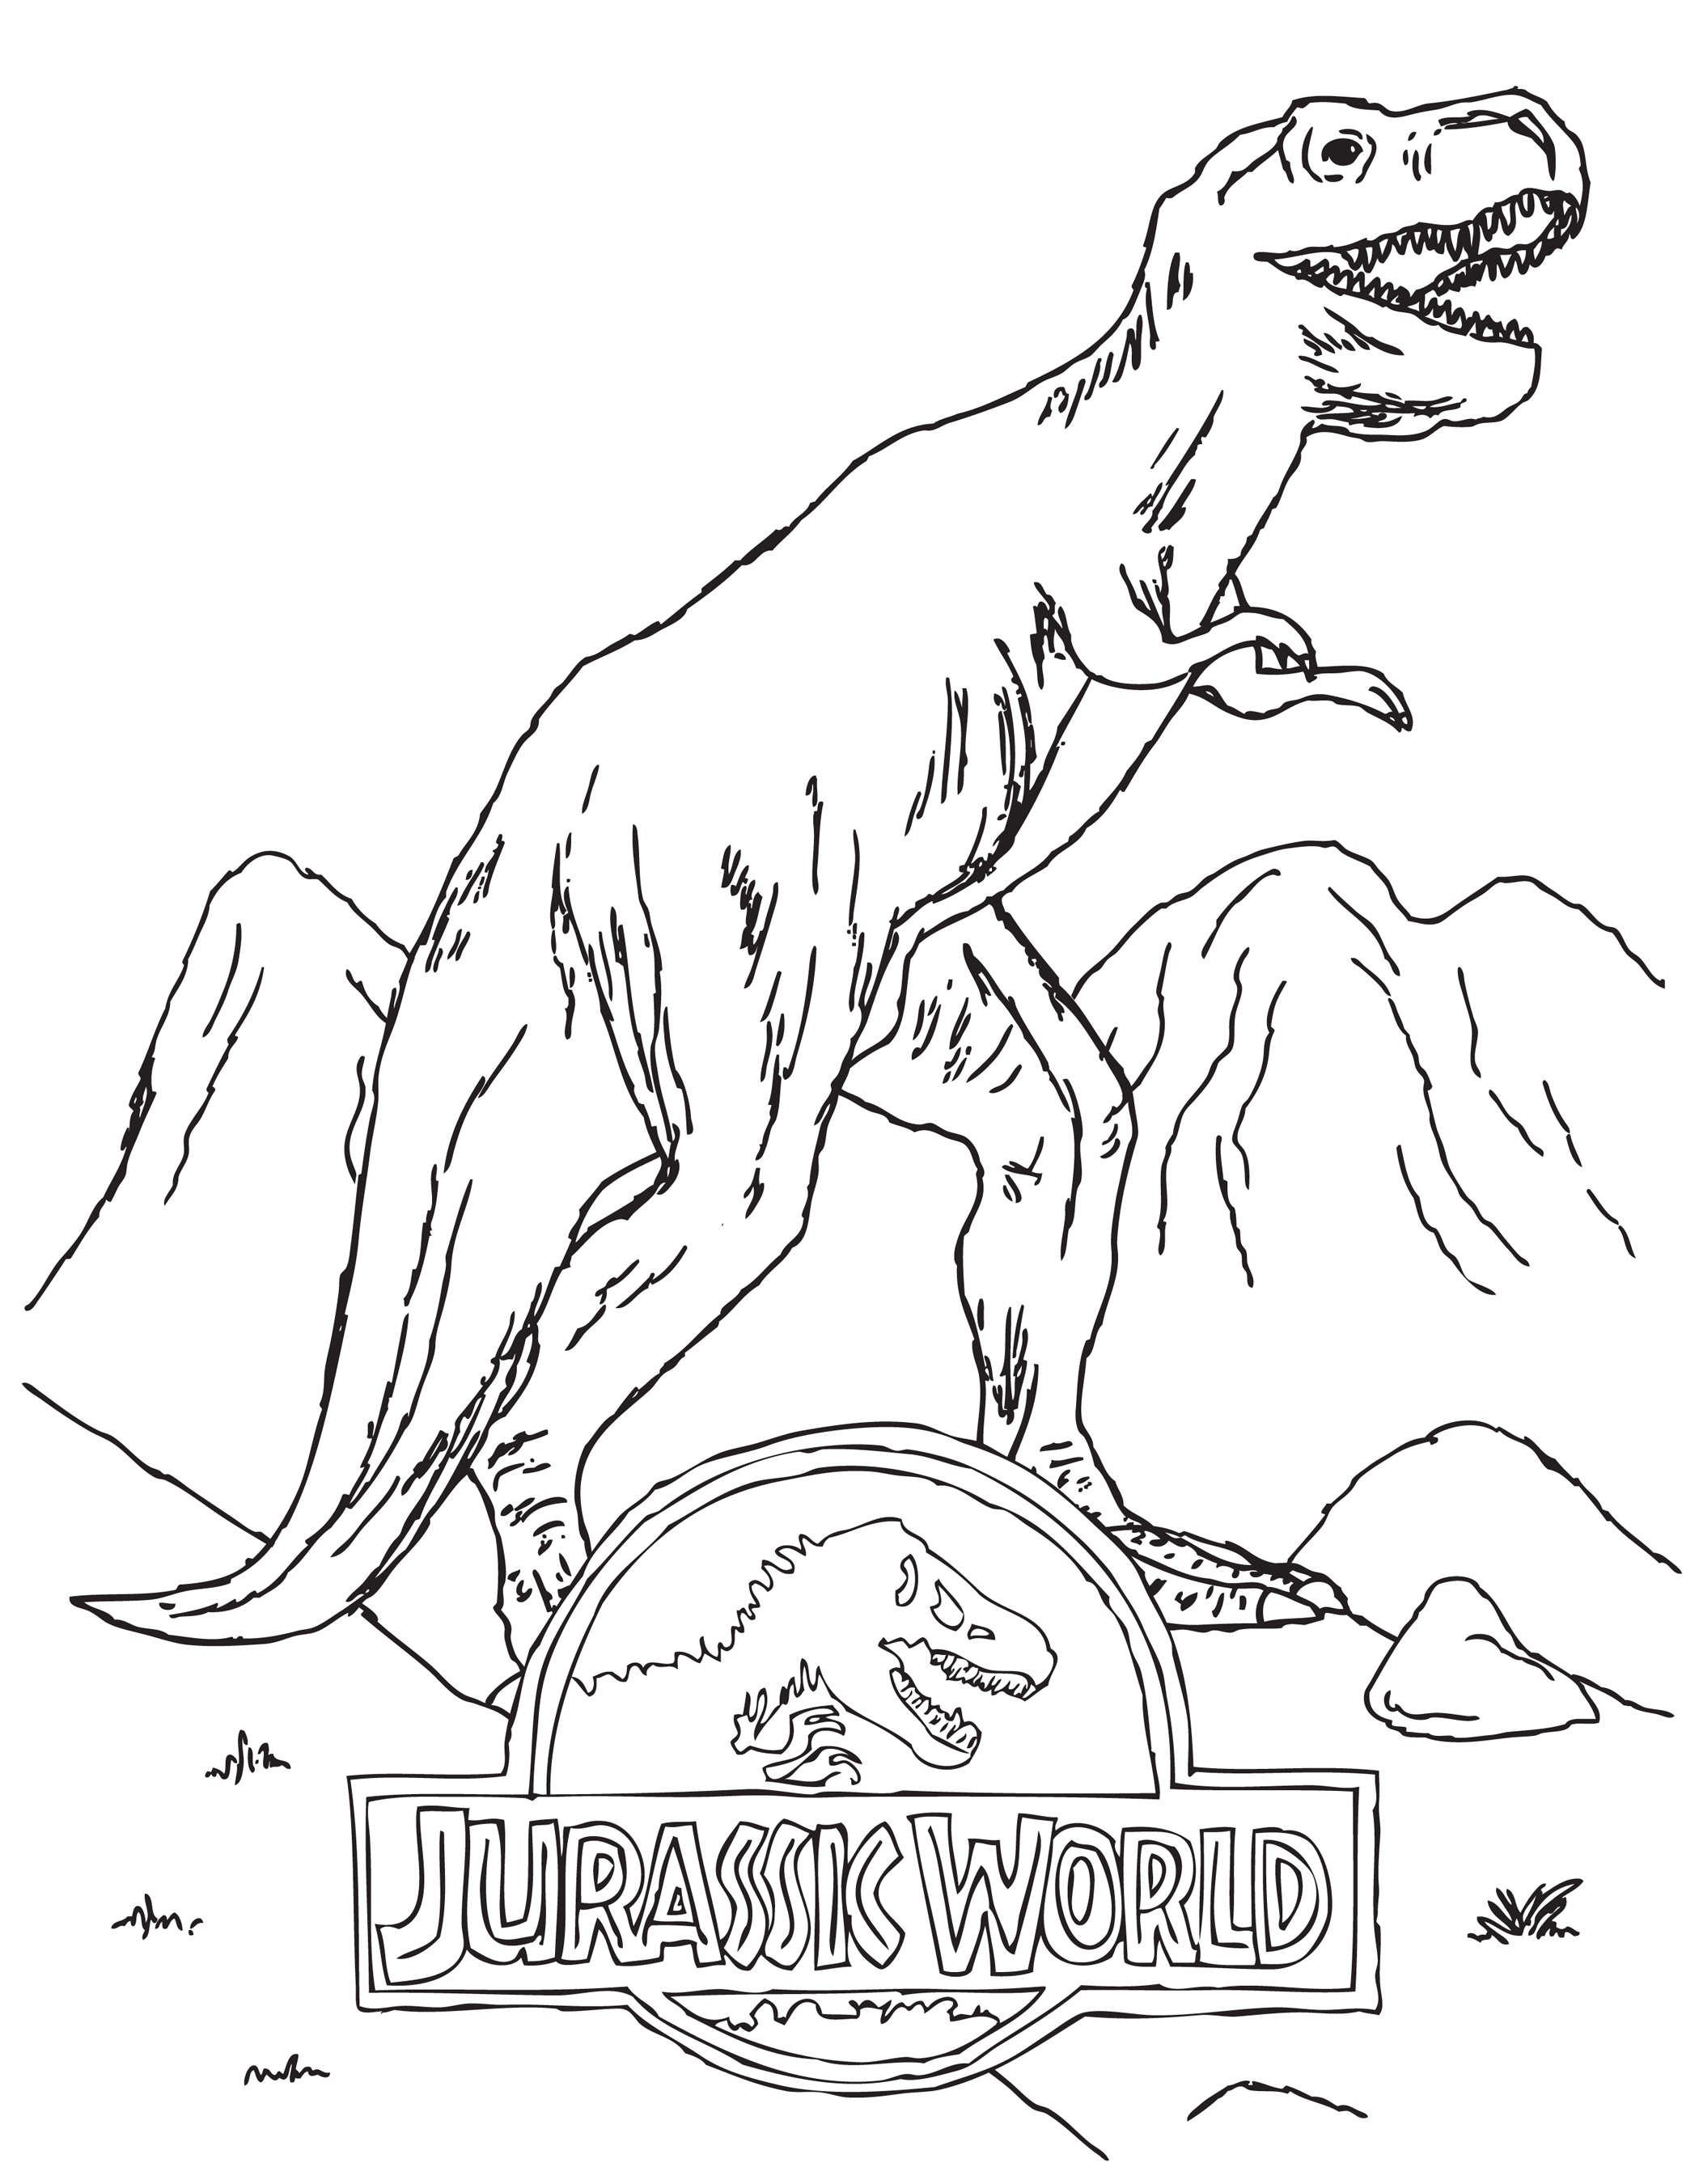 Jurassic World Dinosaur Coloring Pages Coloring Pages